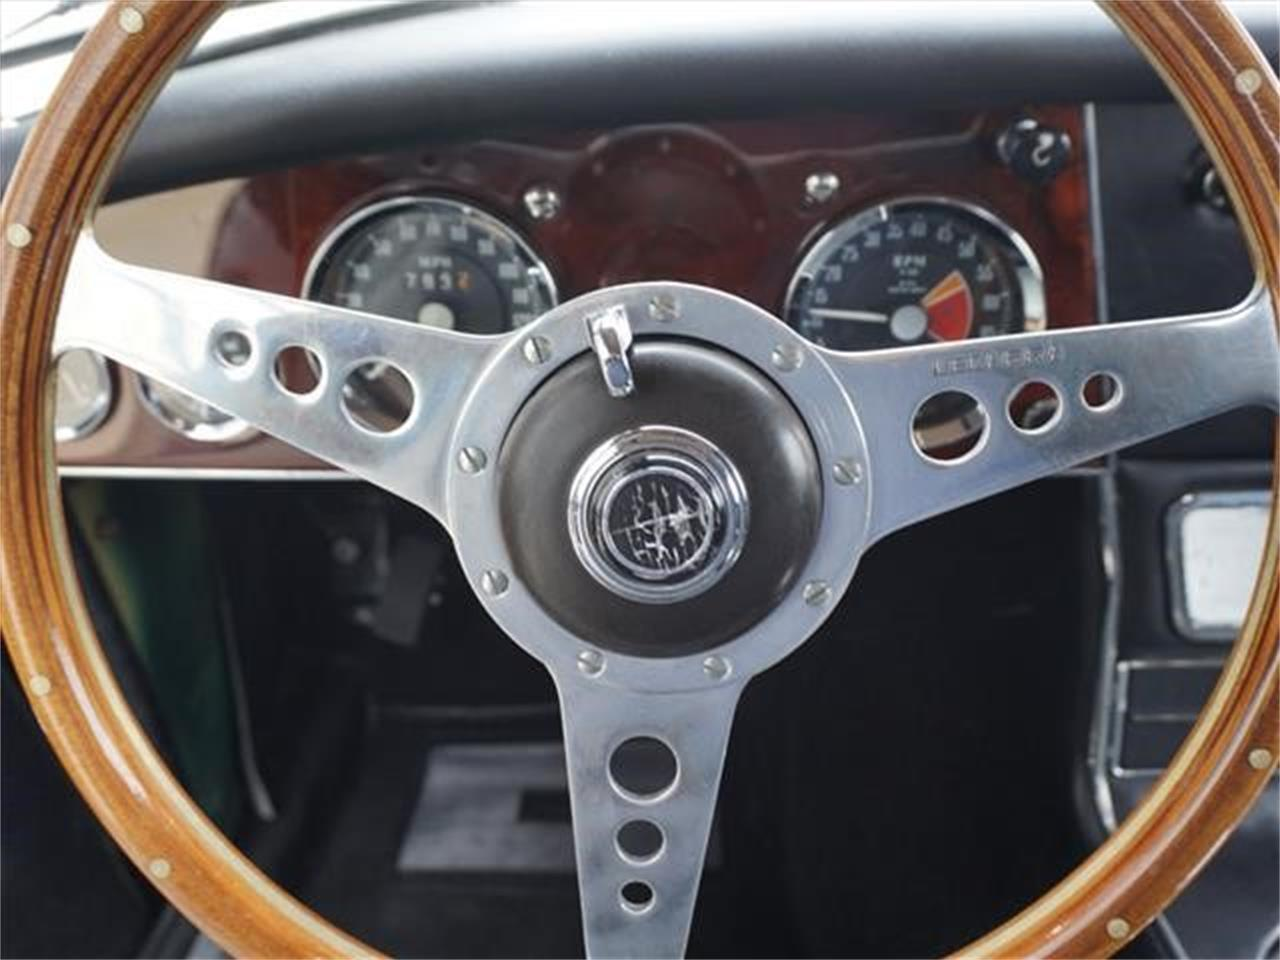 Large Picture of 1967 Austin-Healey 3000 Mark III located in Ohio - $59,999.00 - LRXT